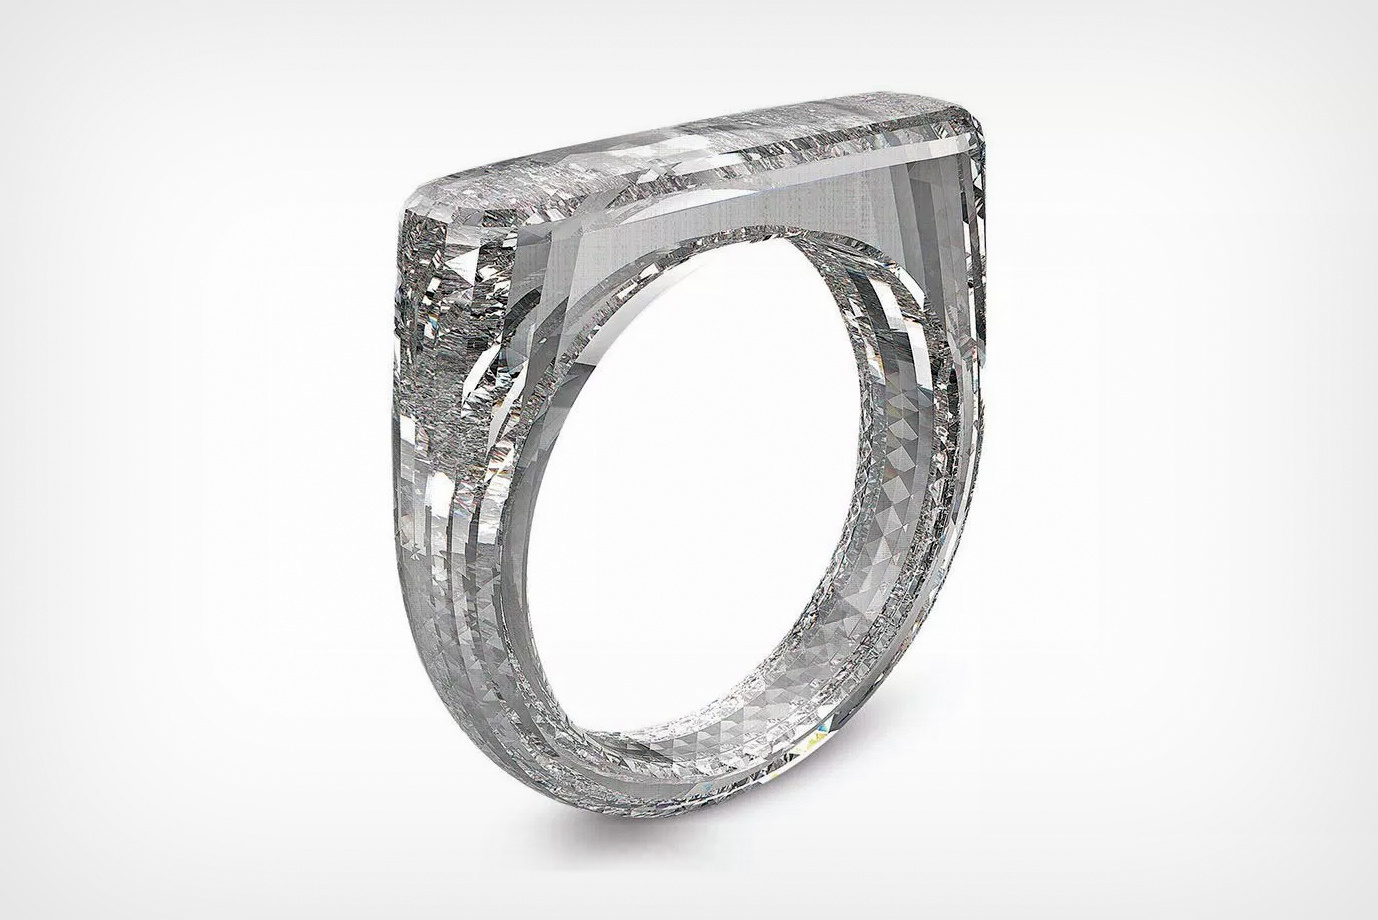 jony_ive_diamond_1